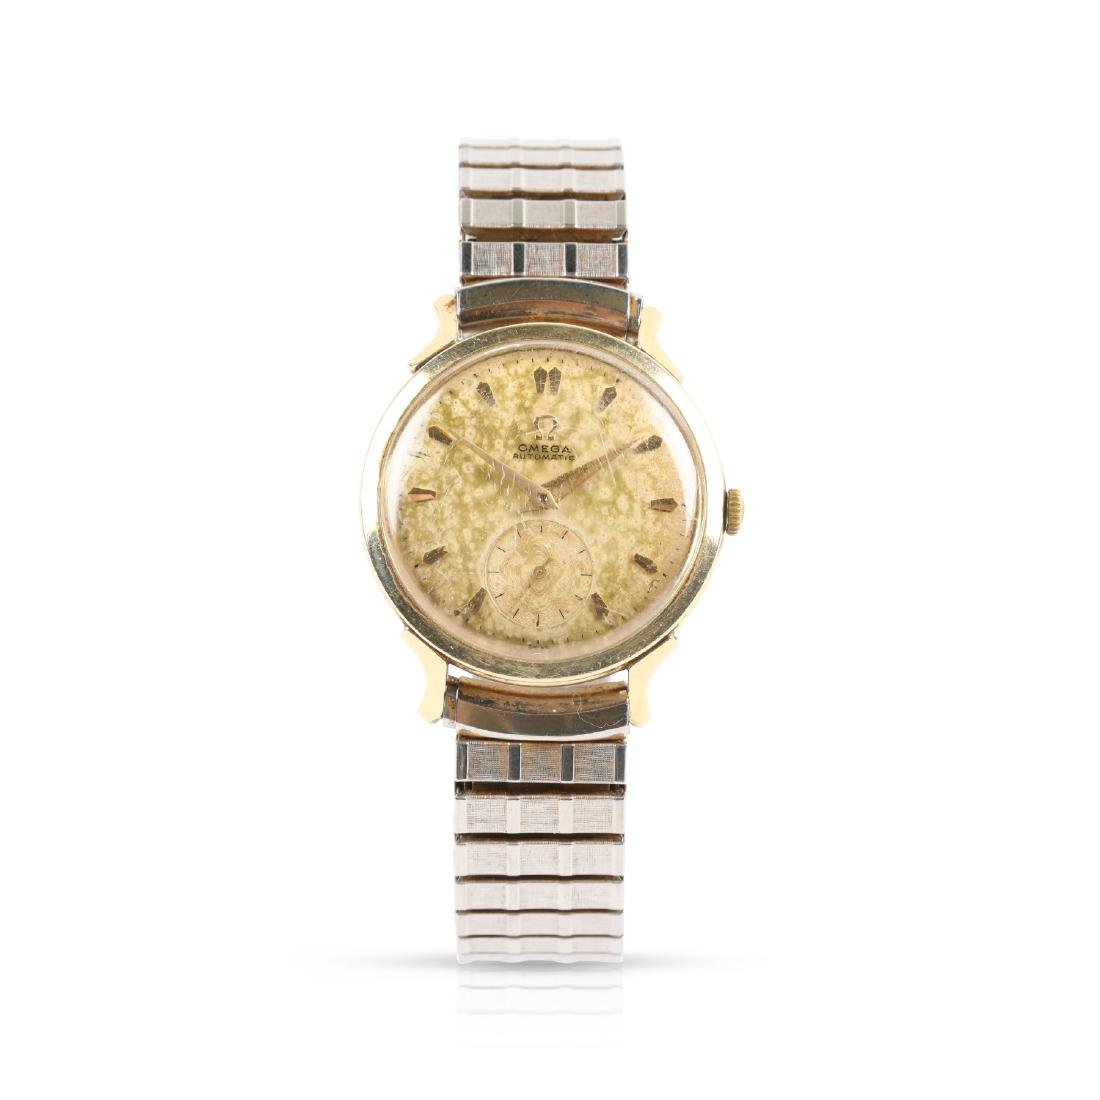 Omega, Automatic, Ref. G-6239